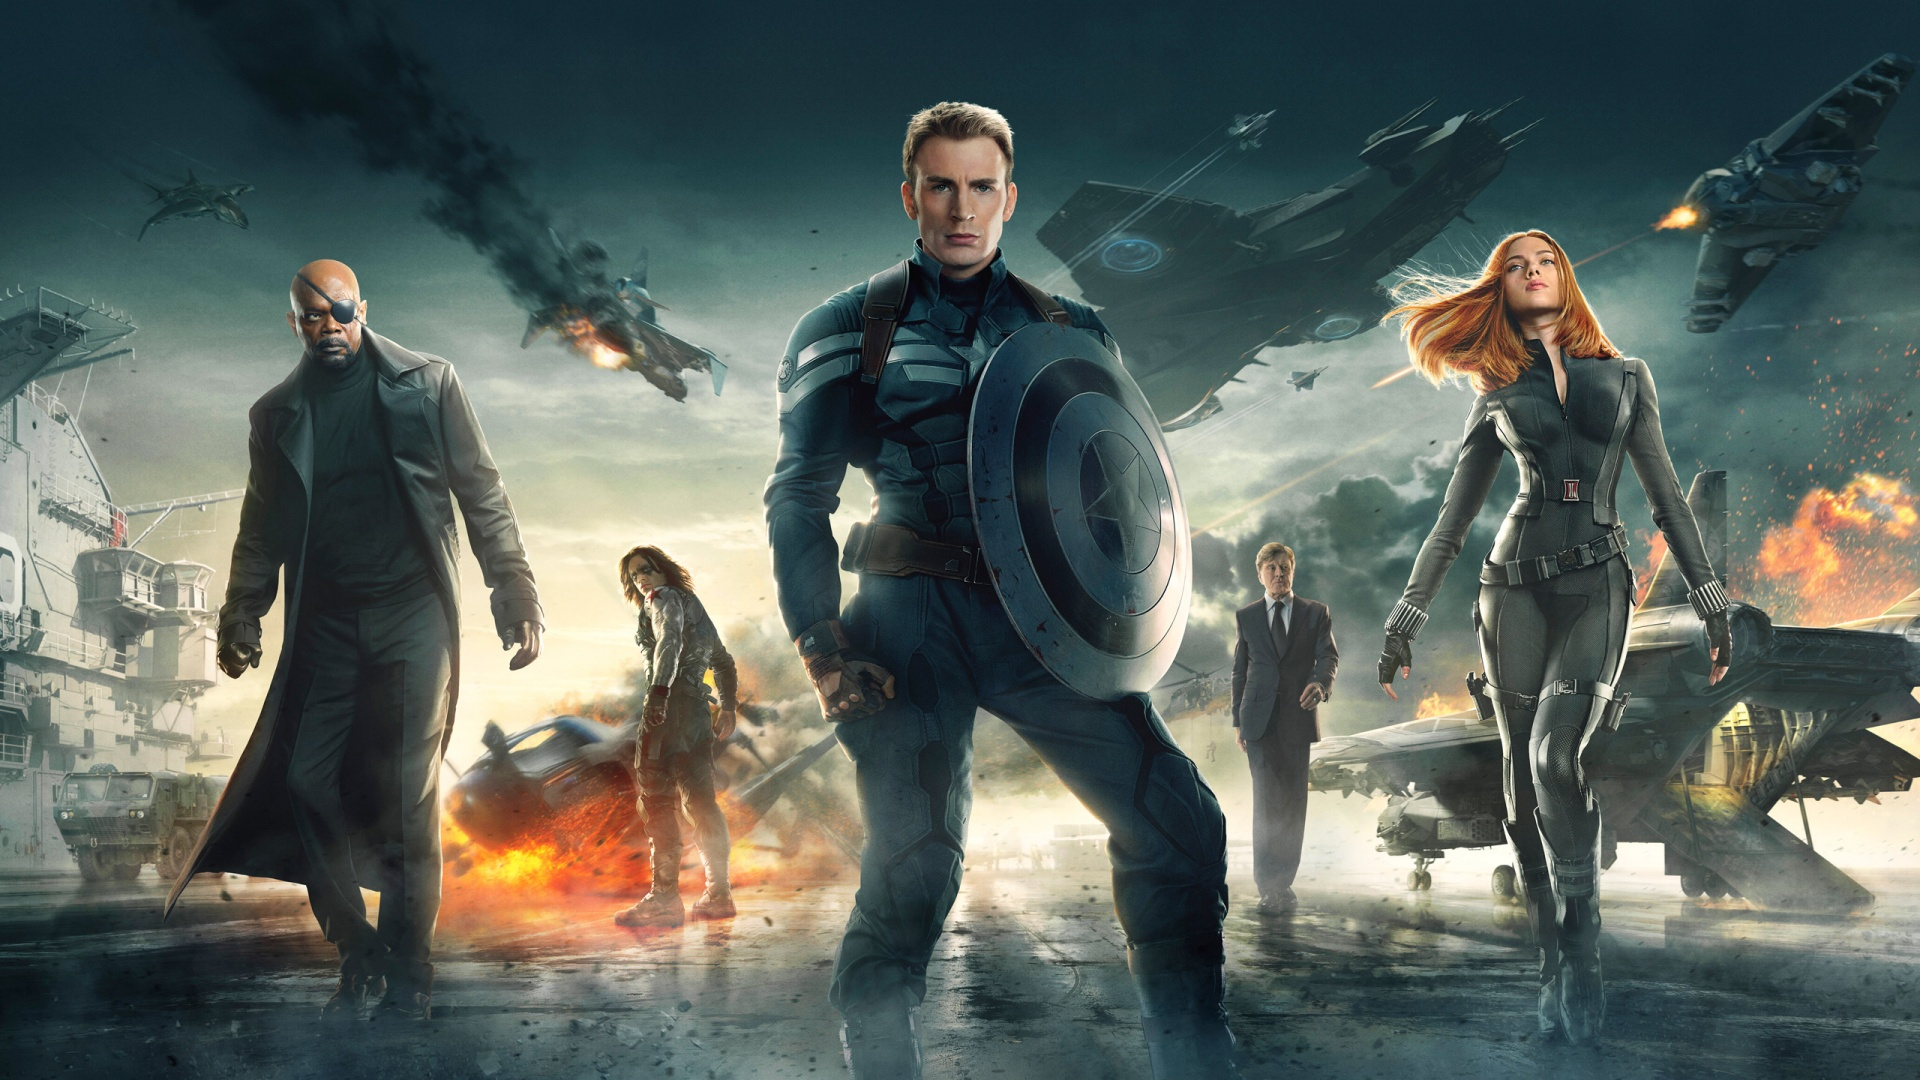 captain america winter soldier   Marvel Live action Movies Wallpaper 1920x1080